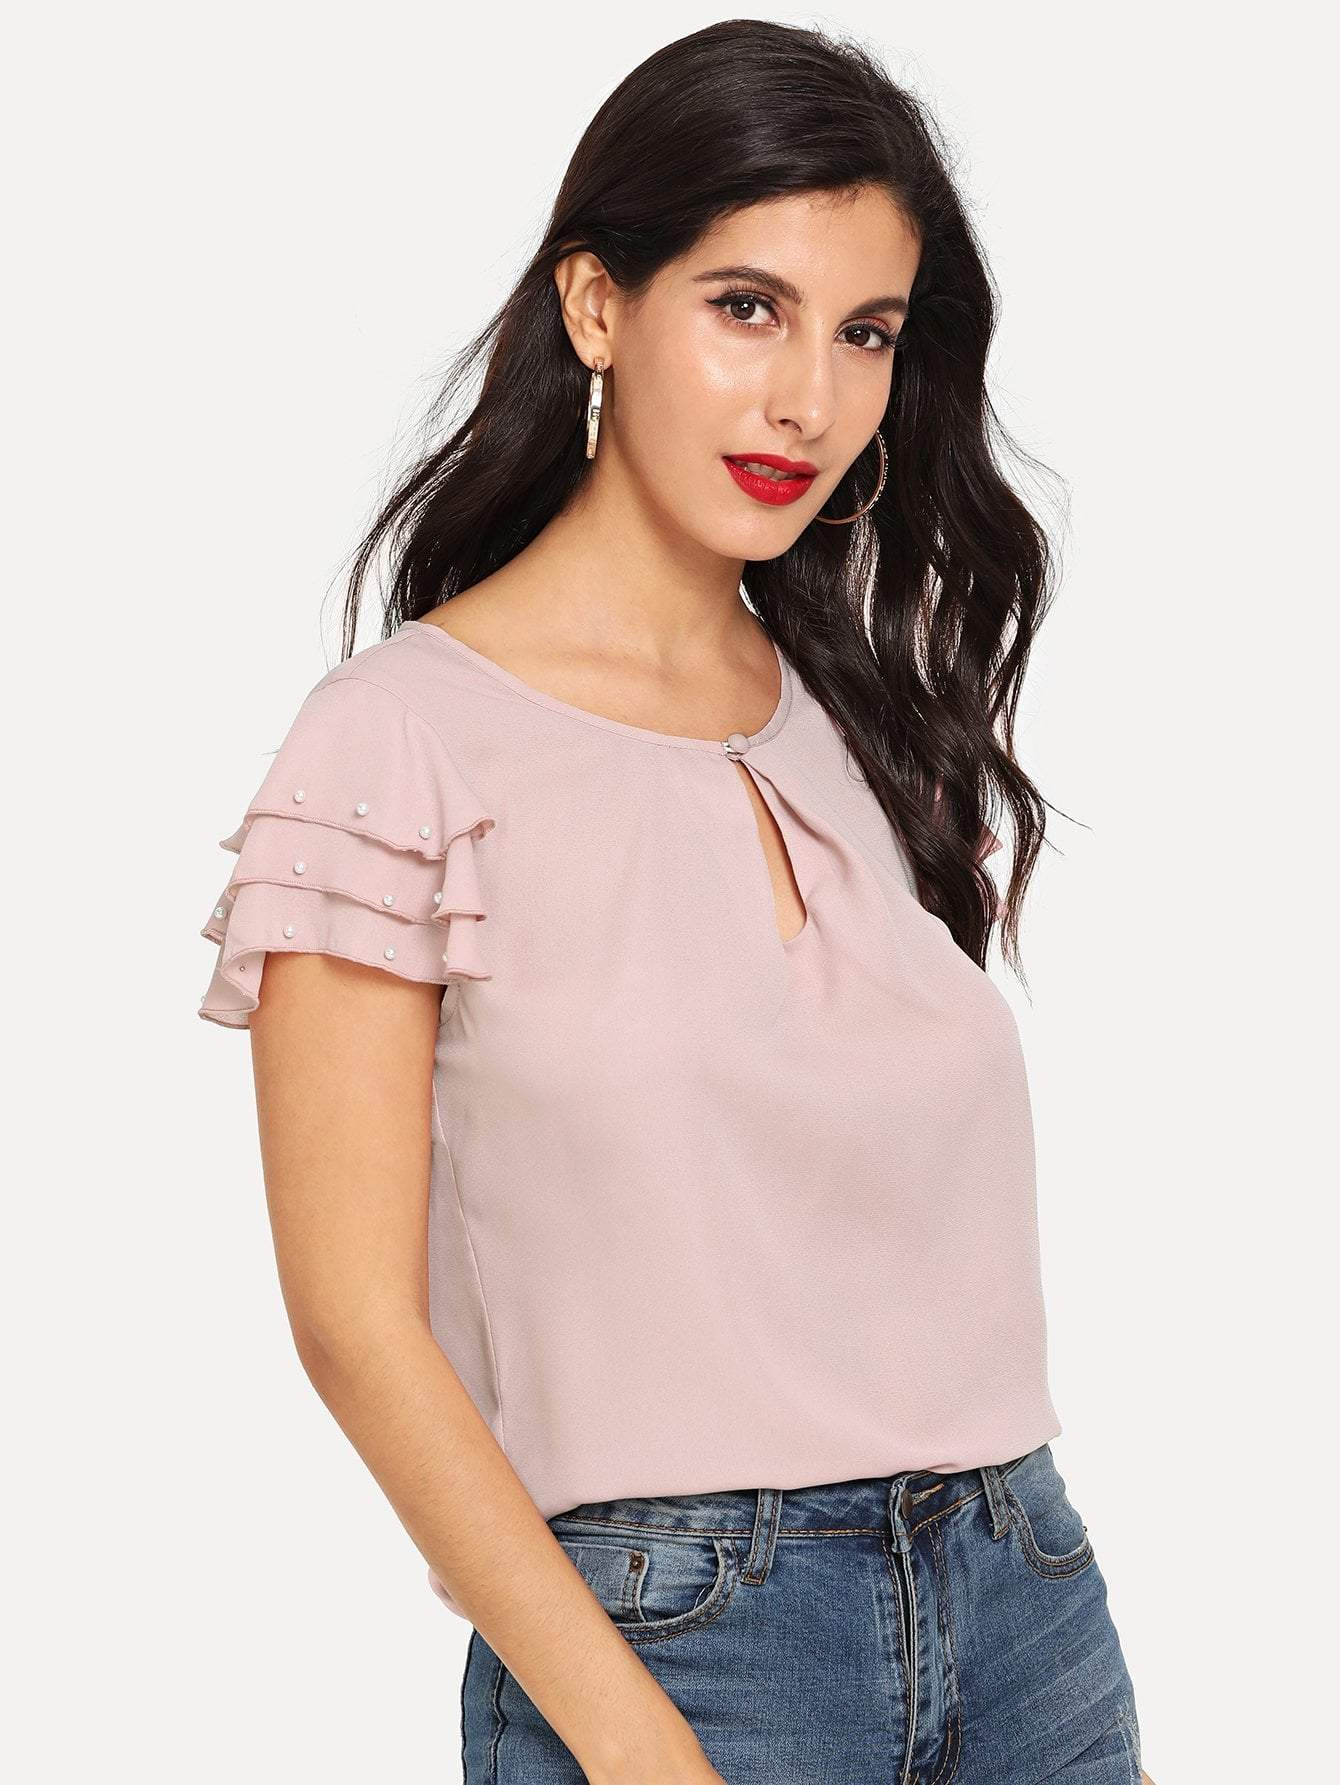 Pearls Beaded Sleeve Top - LoveSylvester